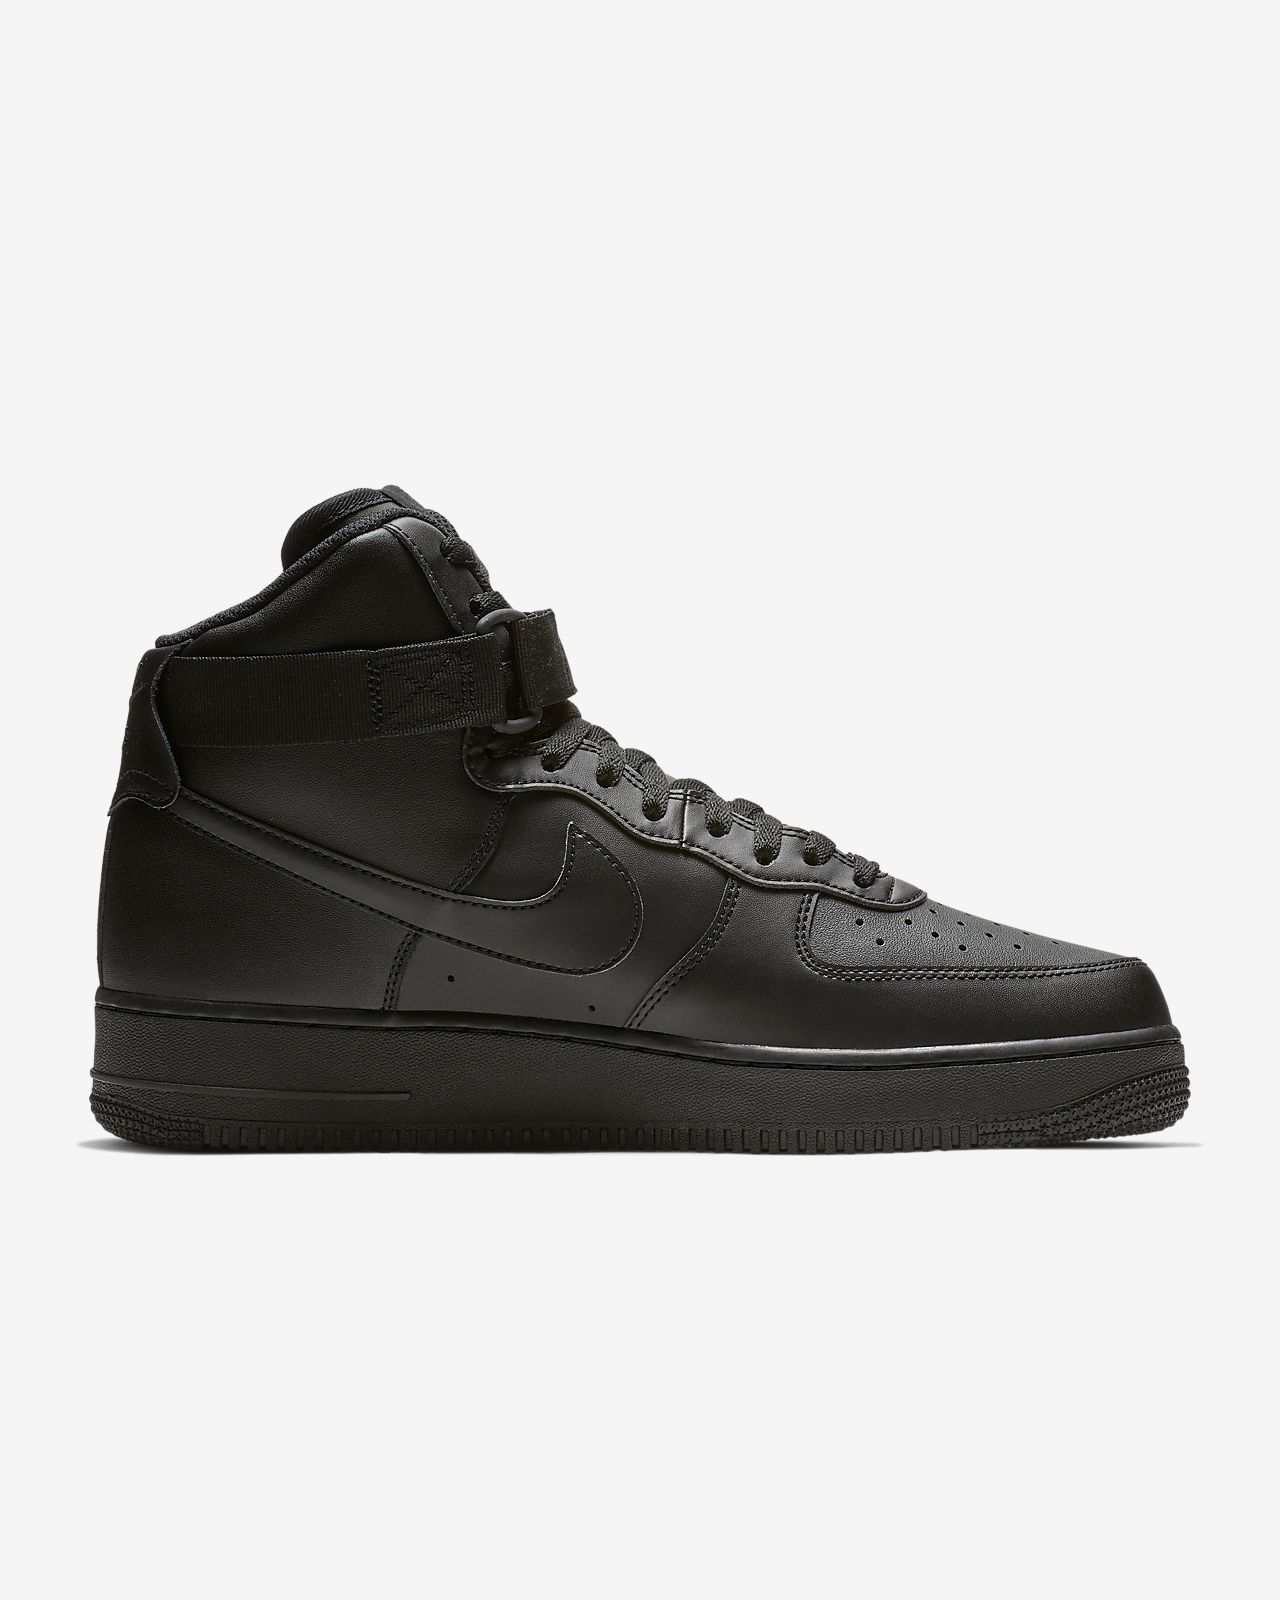 promo code 1377a 99746 ... Nike Air Force 1 High 07 Men s Shoe